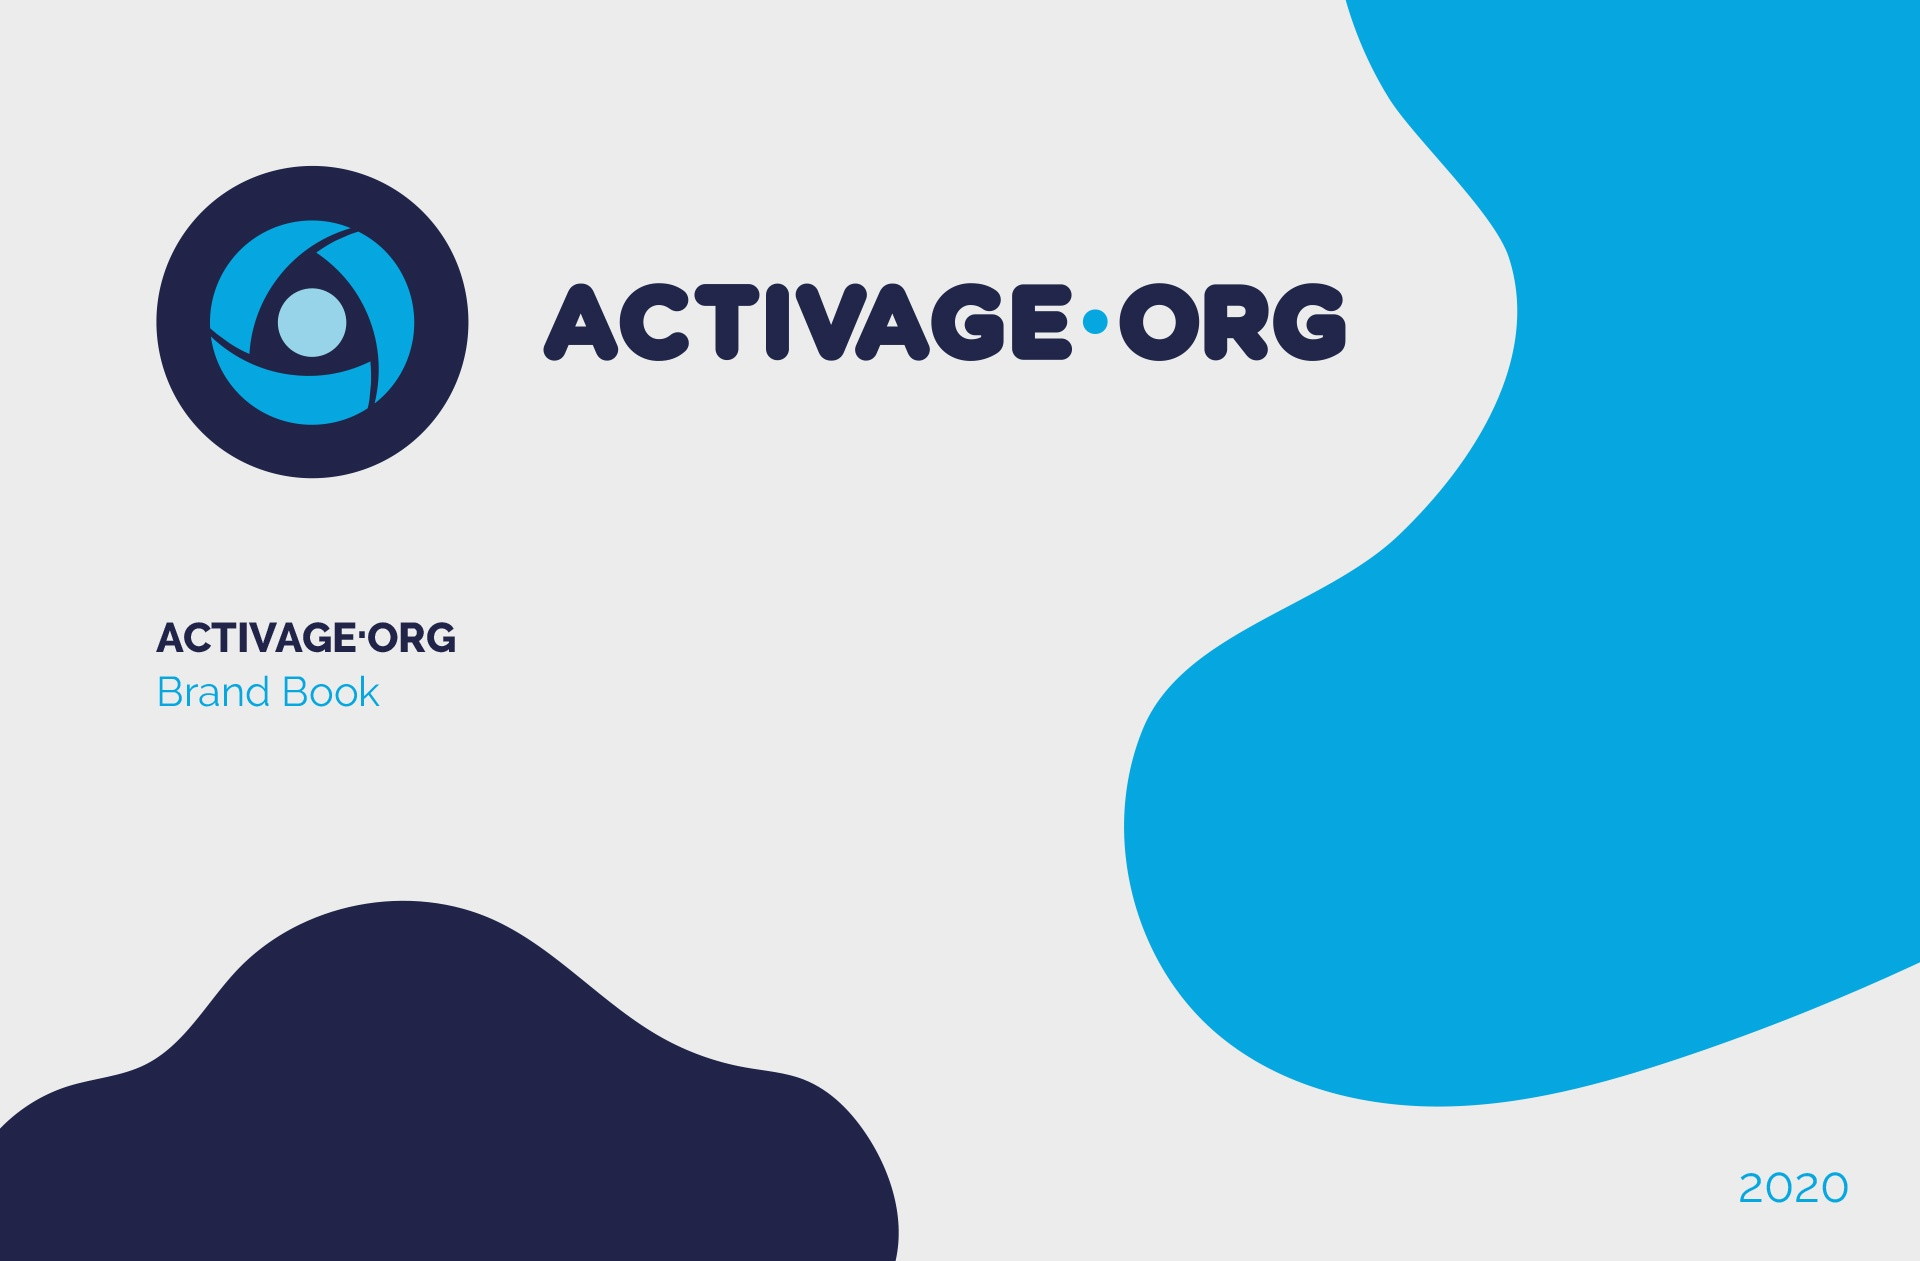 ACTIVAGE•ORG BRAND BOOK